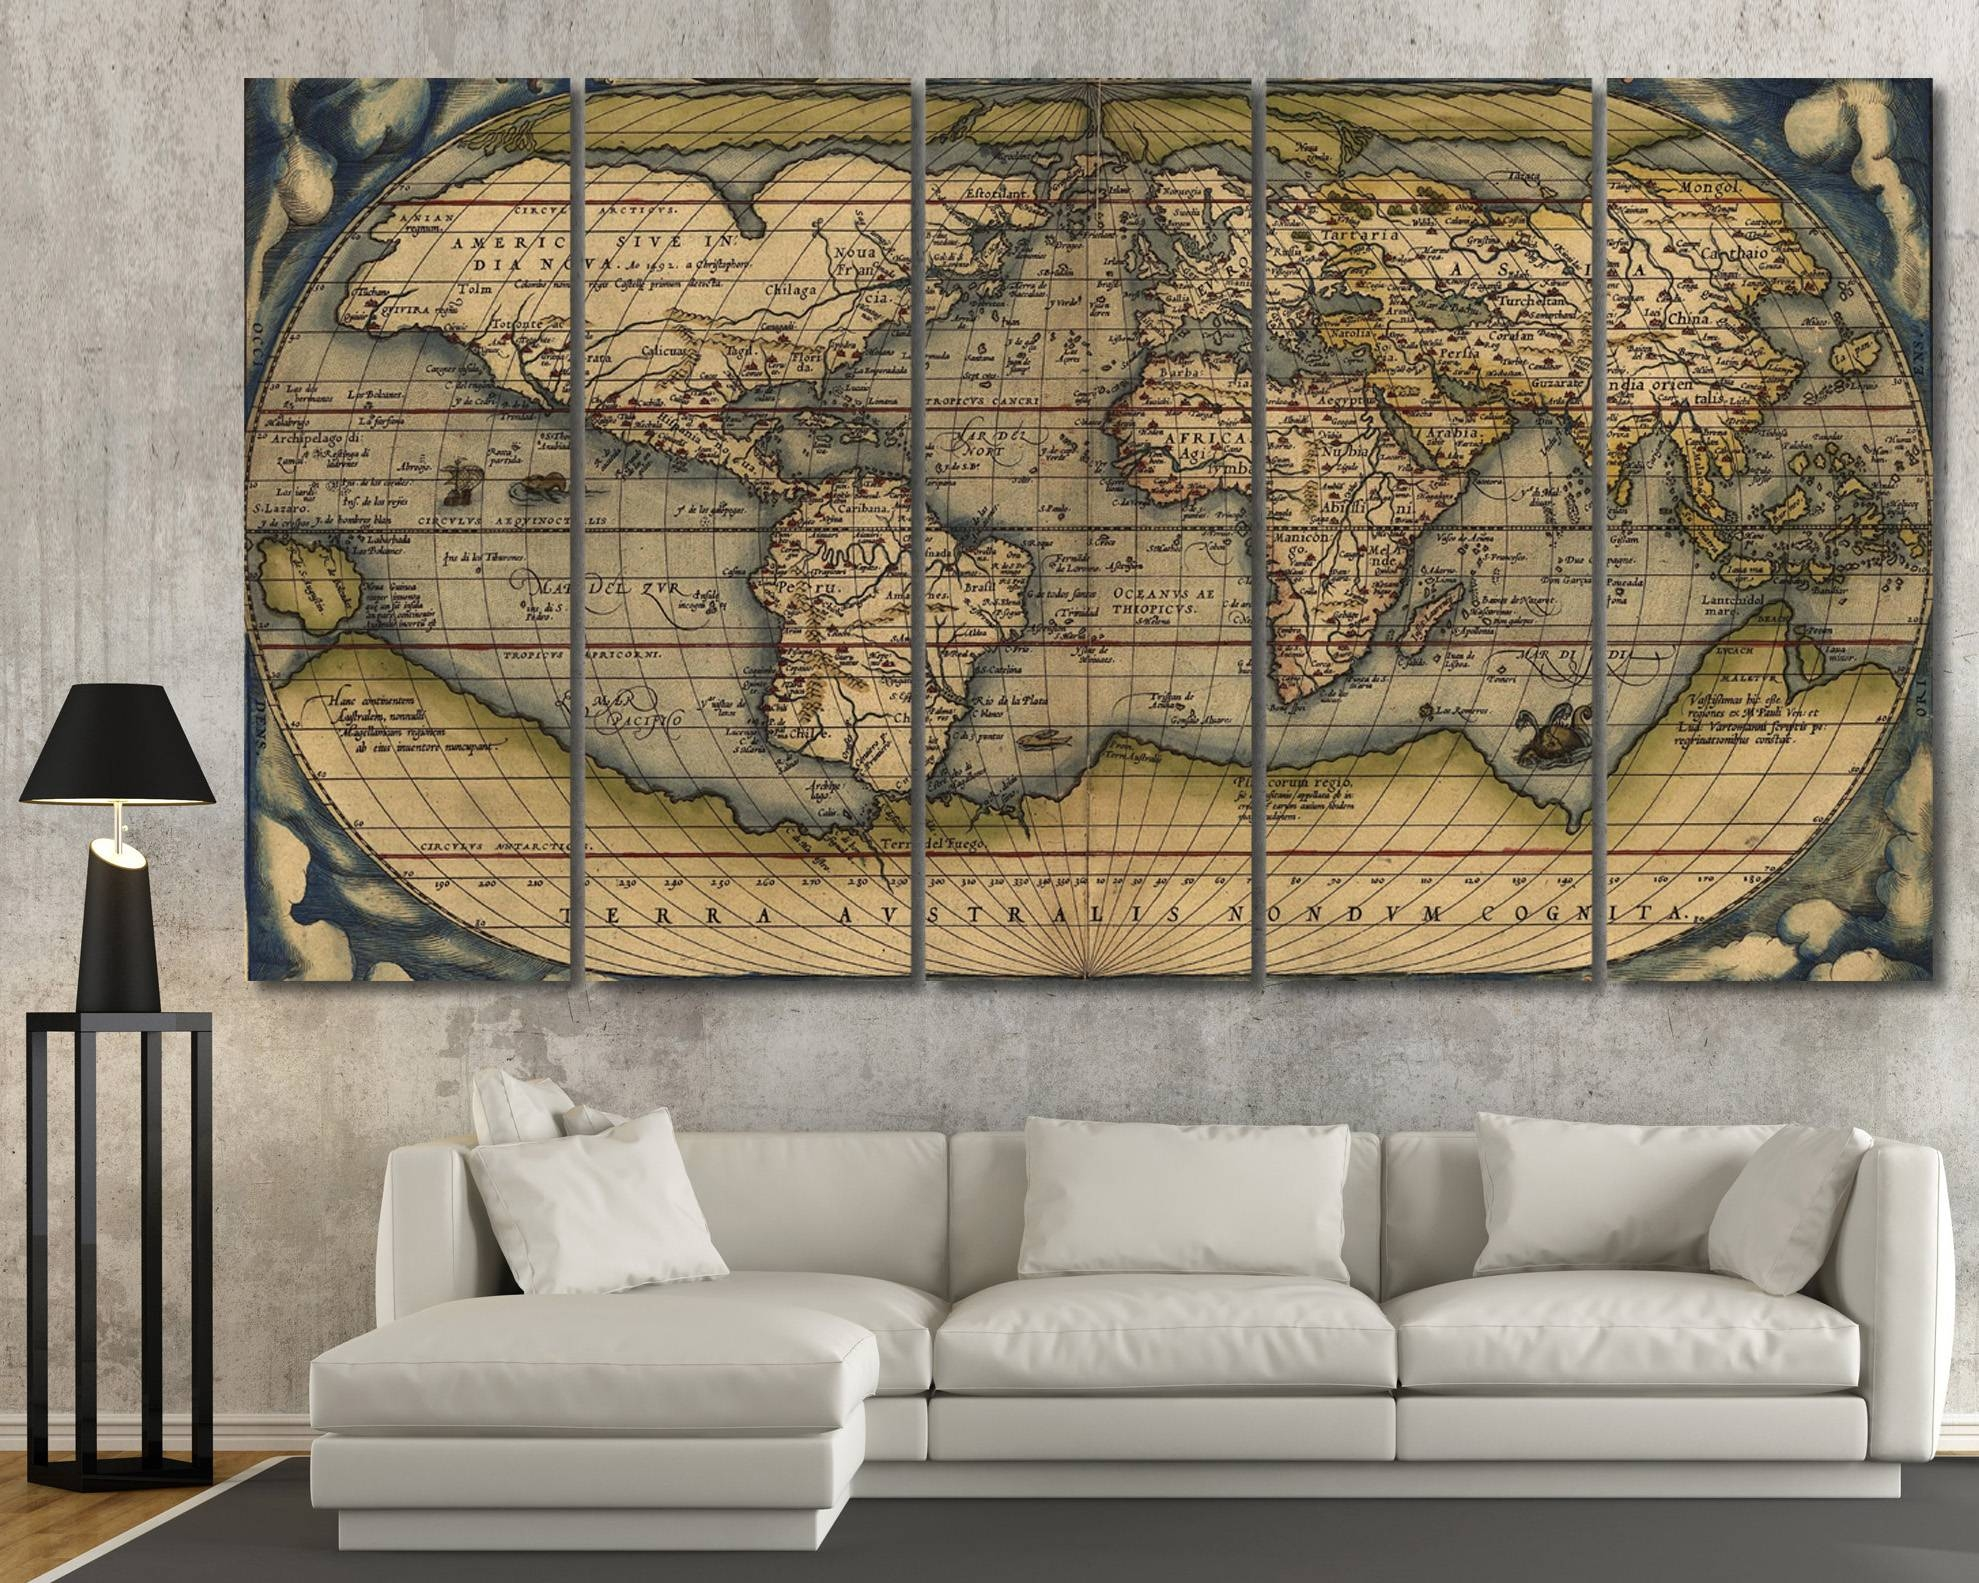 Large Vintage Wall Art Old World Map At Texelprintart Intended For Recent Old World Map Wall Art (View 3 of 20)